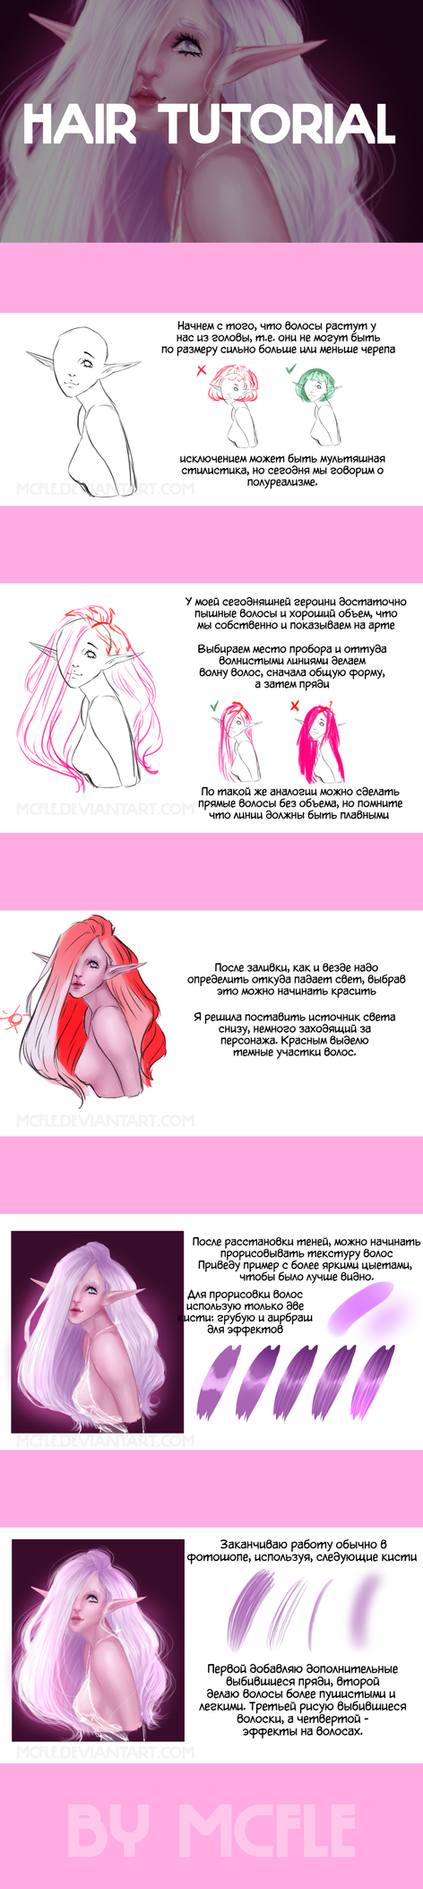 Hair tutorial | CSP + PS | RUS by mcfle